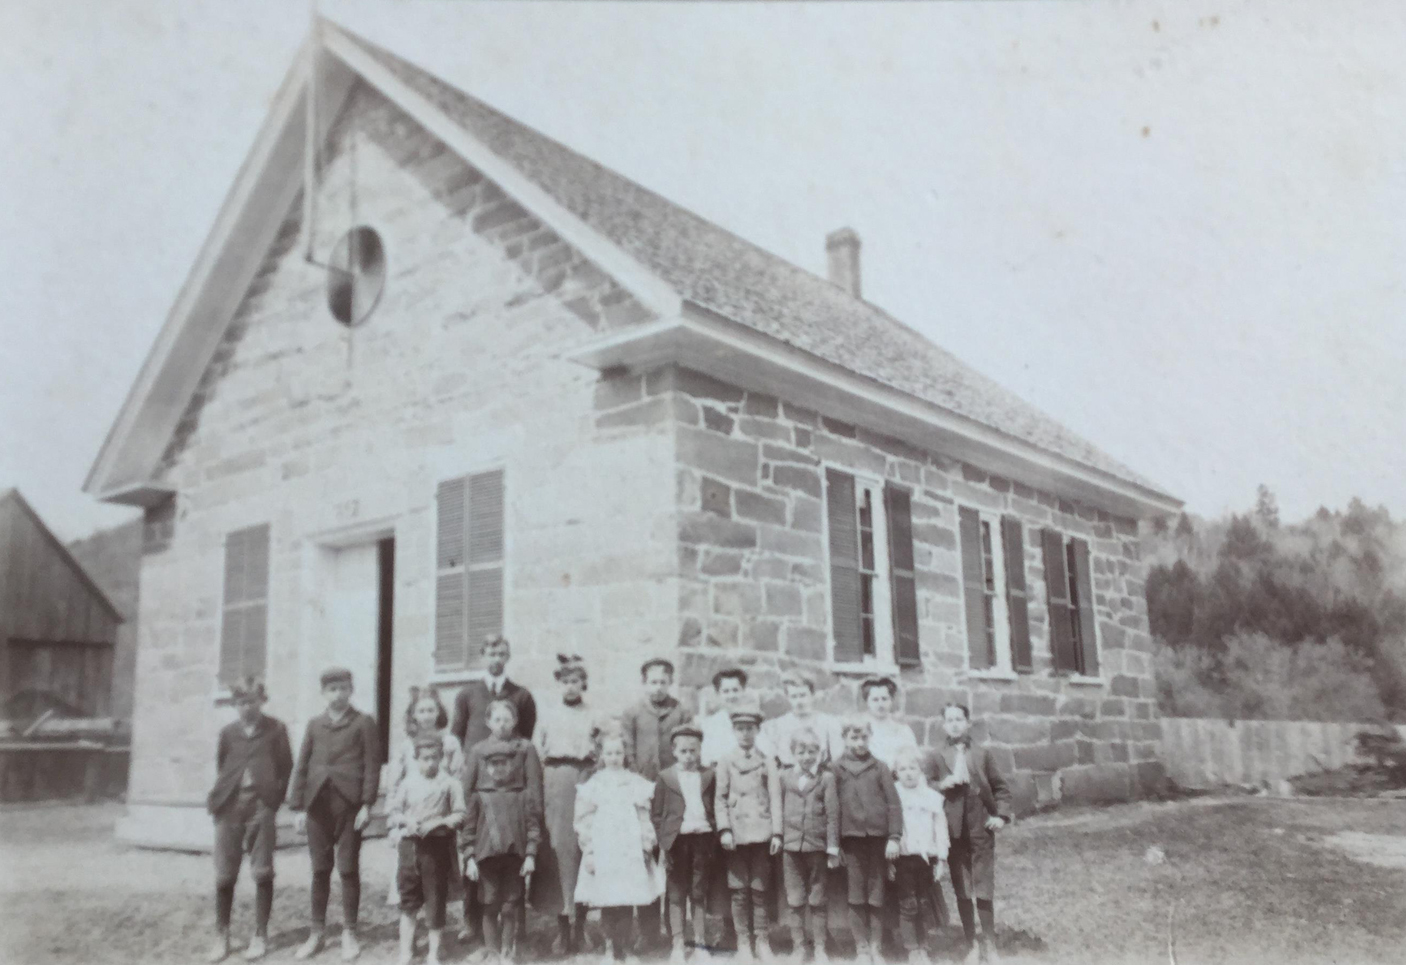 Rupert attended the Prosper School, which was located at the base of the North Bridgewater Road, a short distance from his home. Rupert is shown in the front row, fourth from the left.